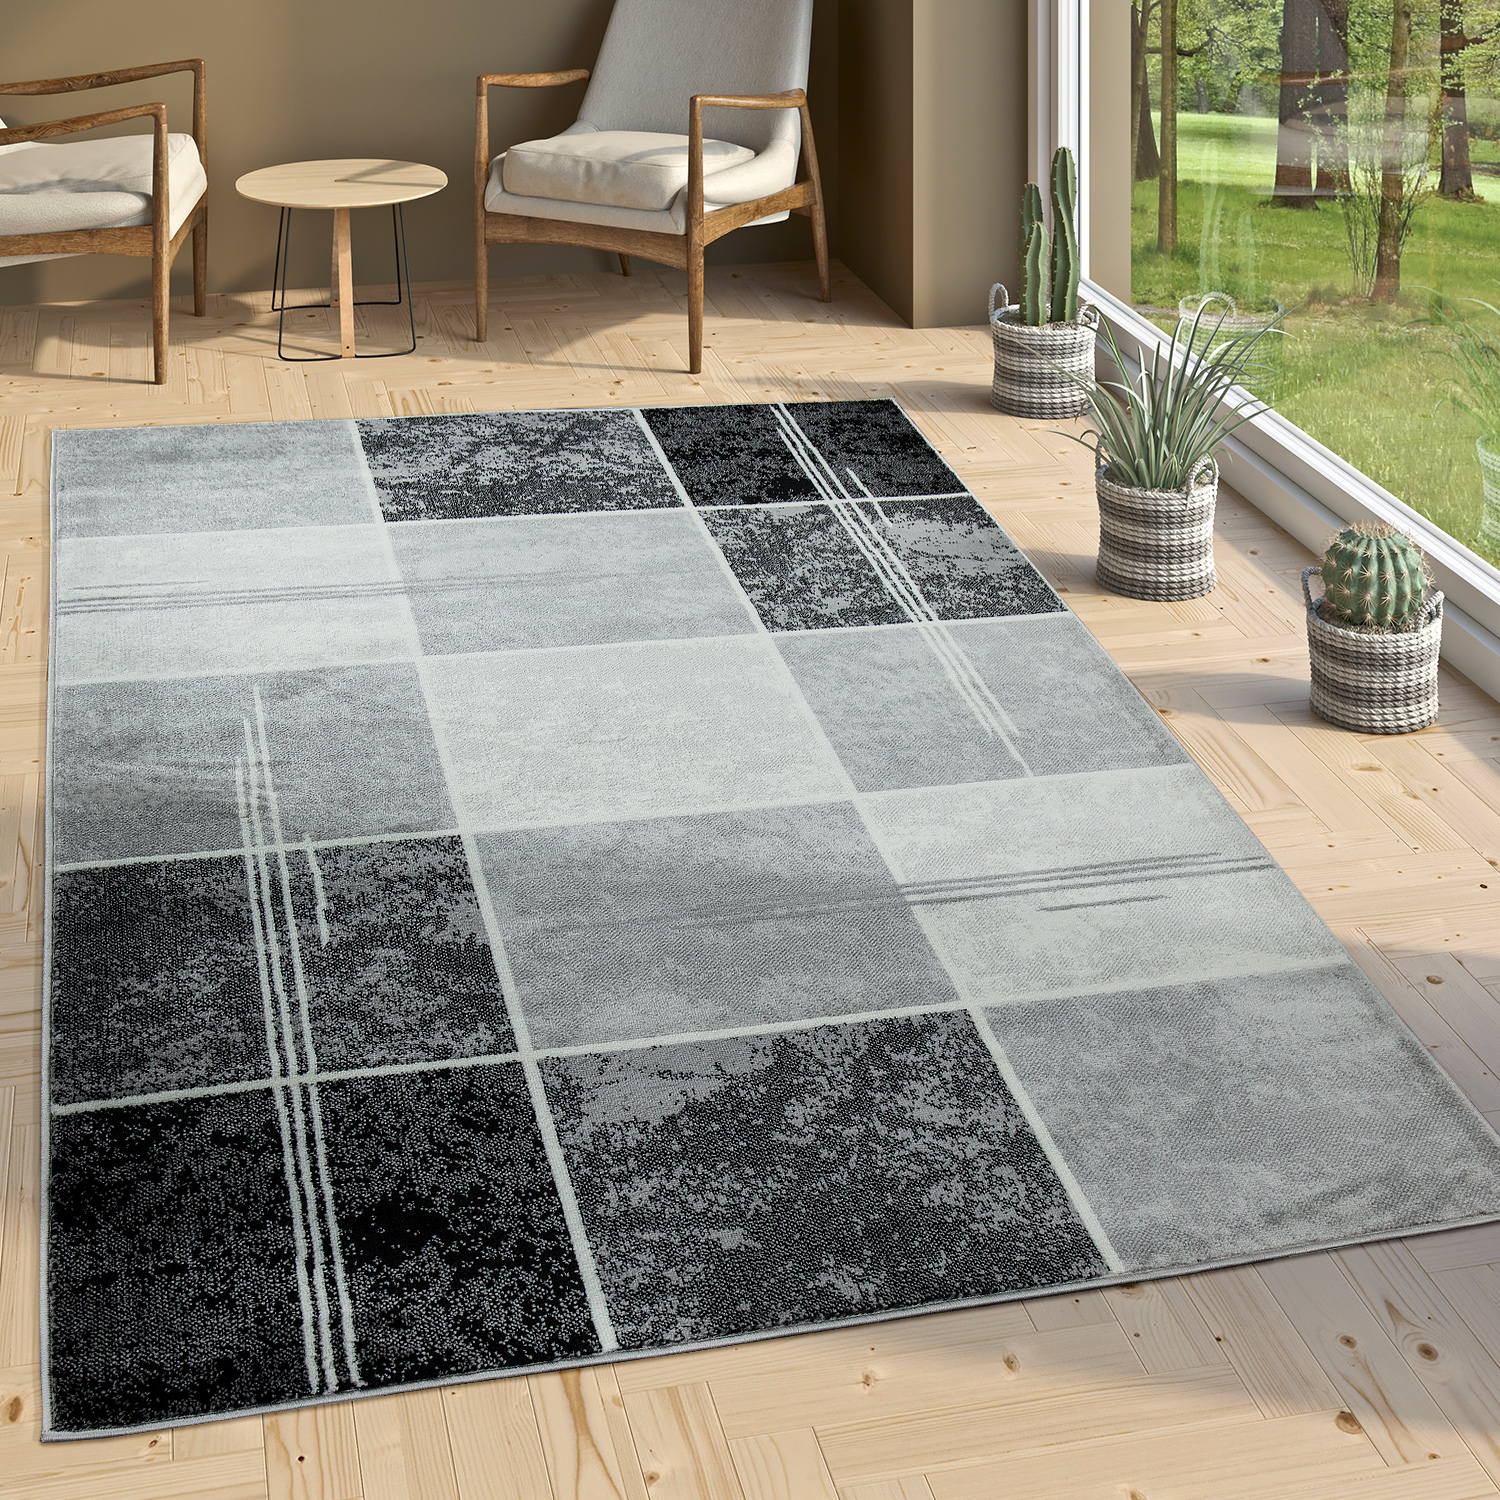 Designer Rug Chequered in Marble Visual Effect Flecked Grey Black White